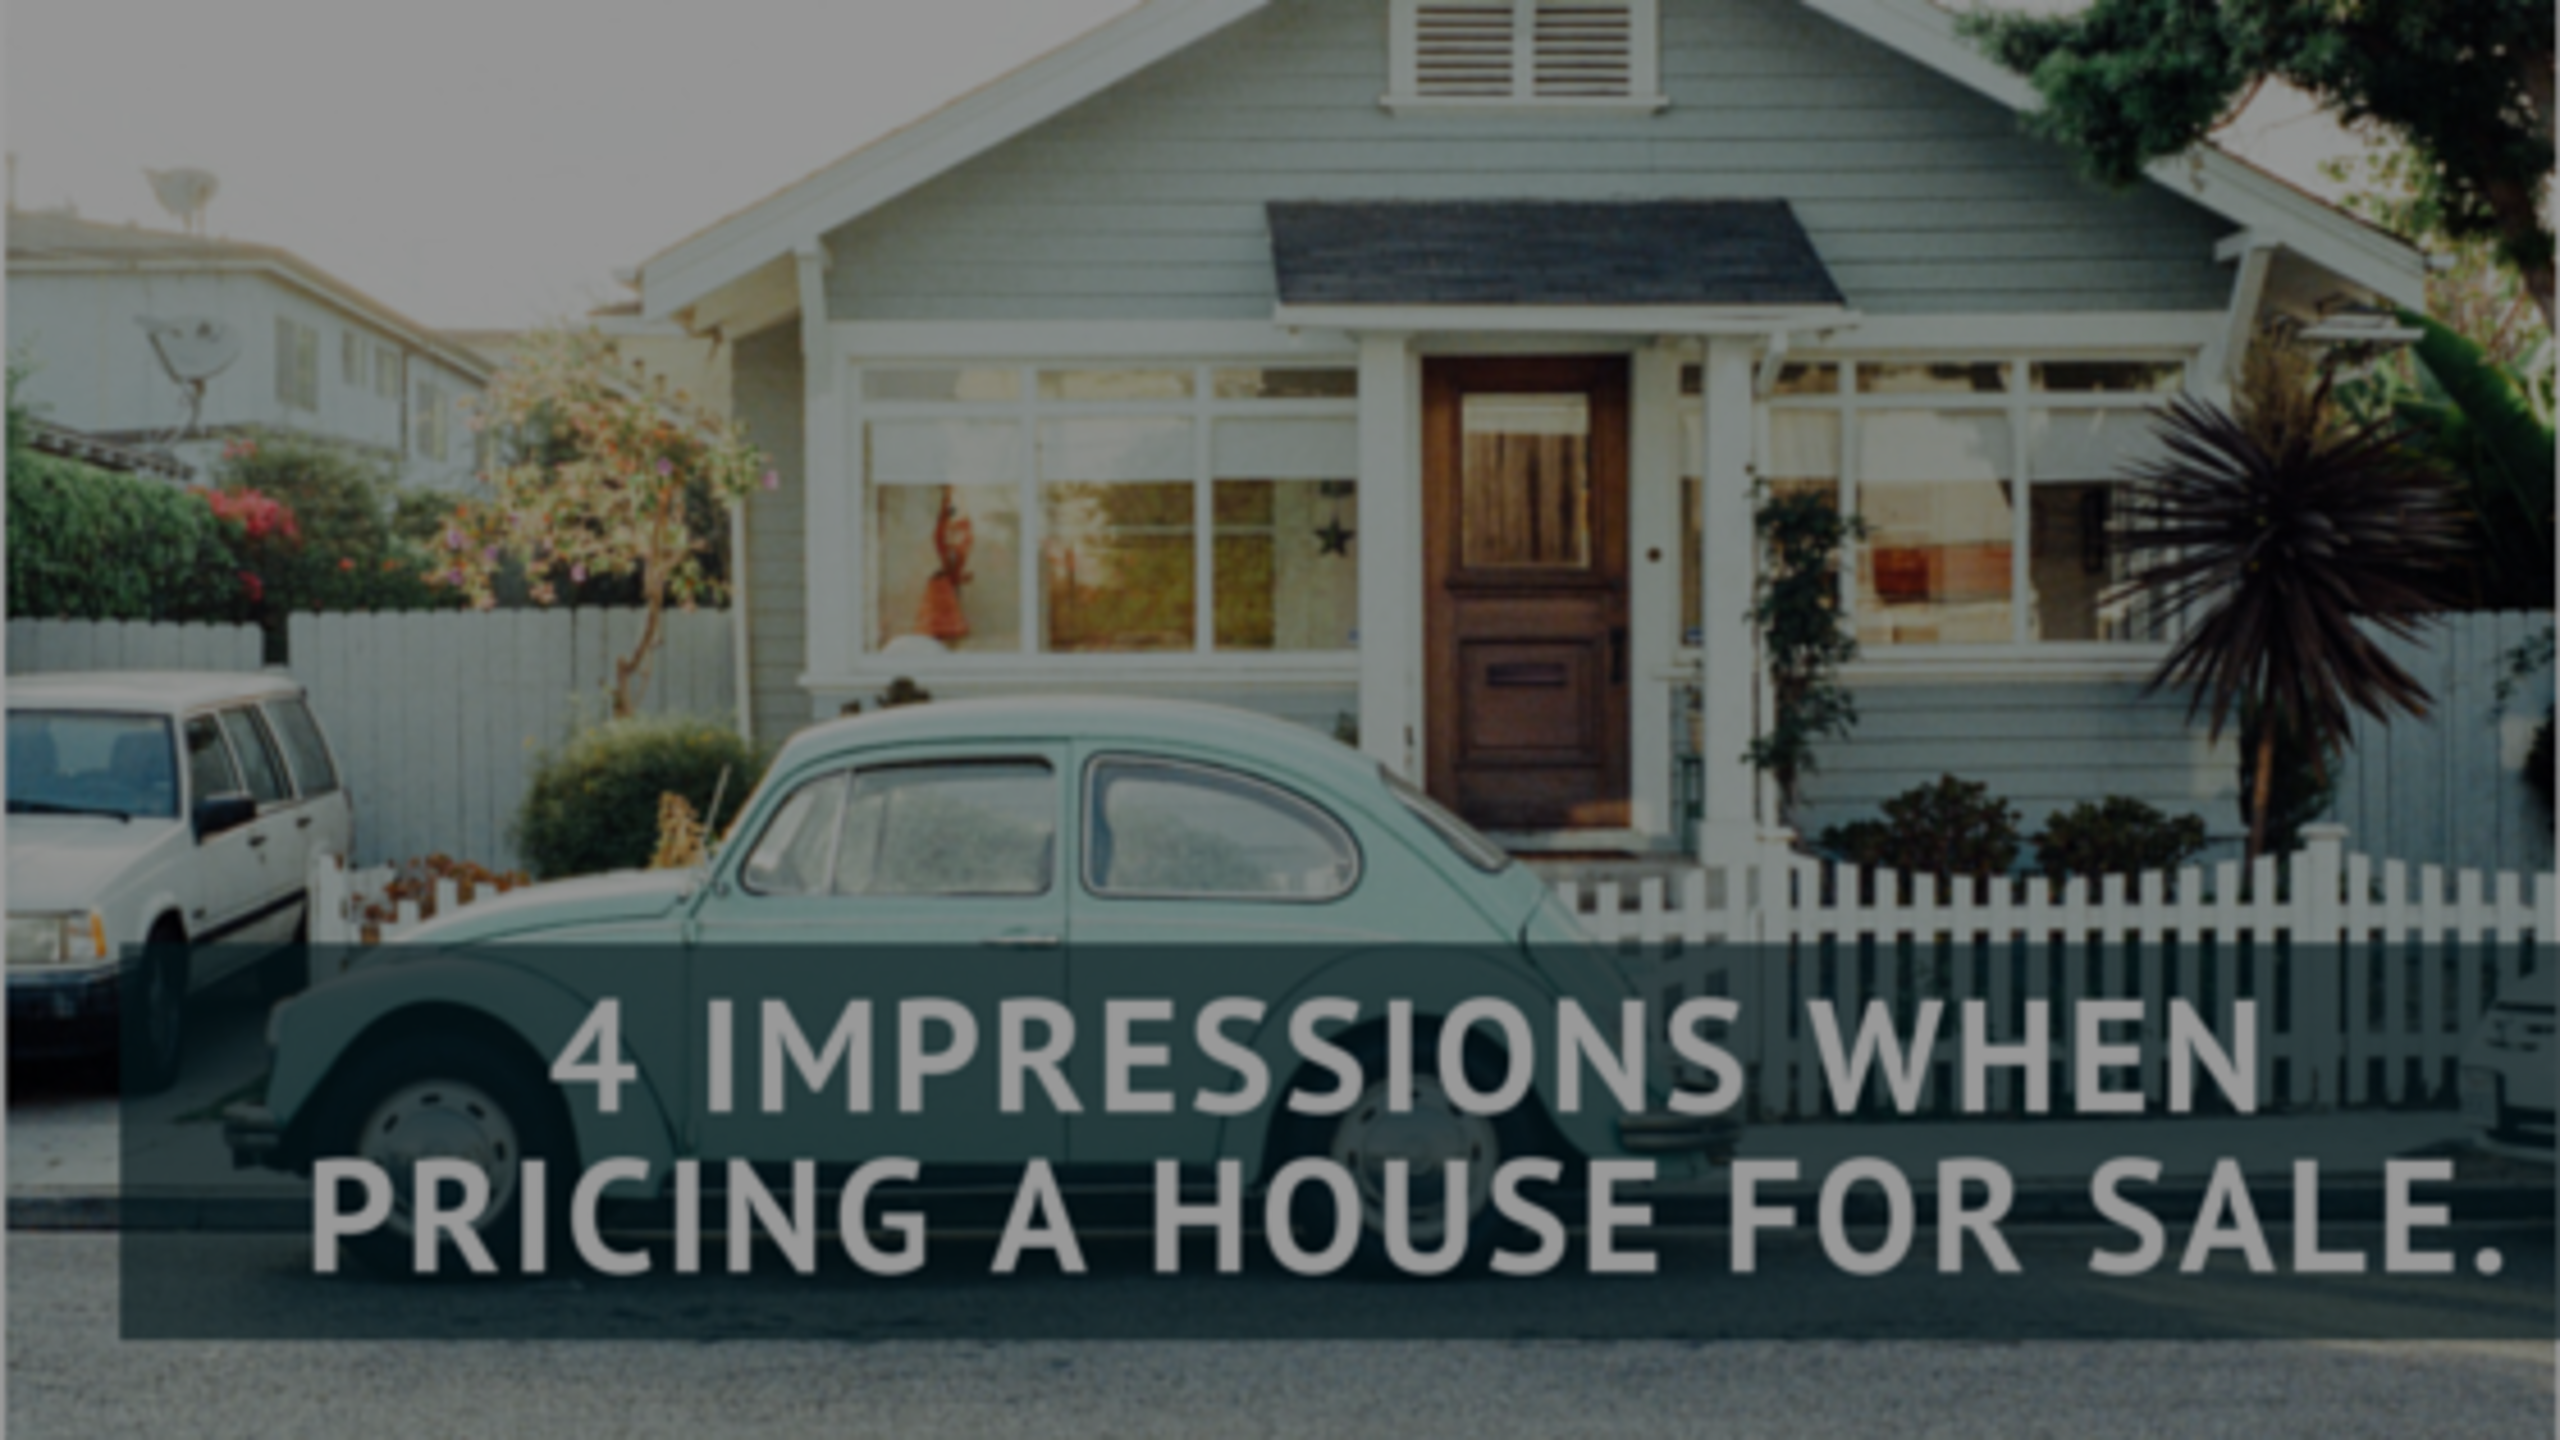 4 Impressions when pricing a house for sale